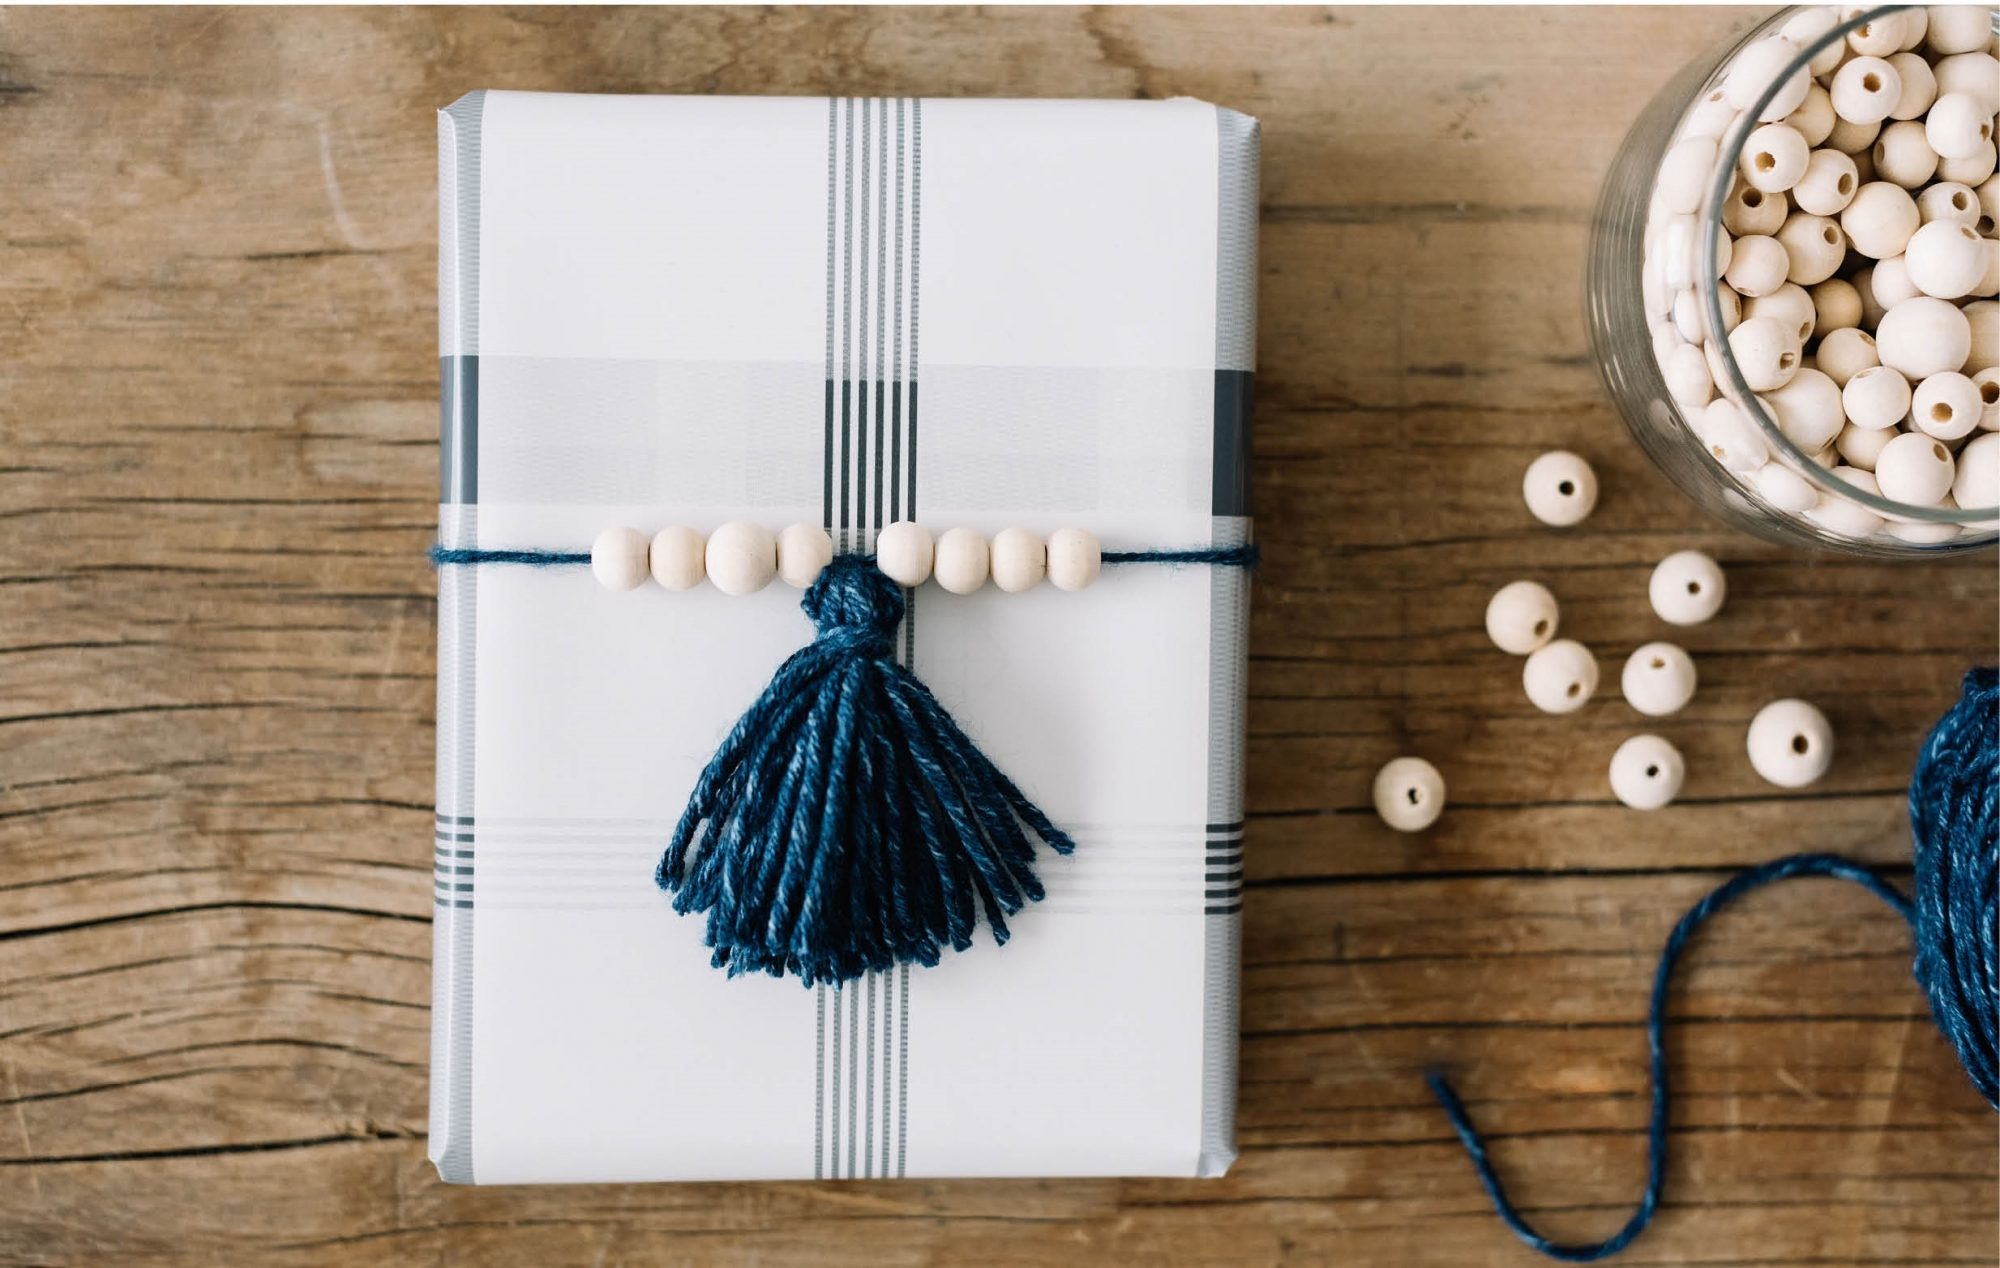 Joanna Gaines Shares How to Make Beautiful Tassel Gift Toppers